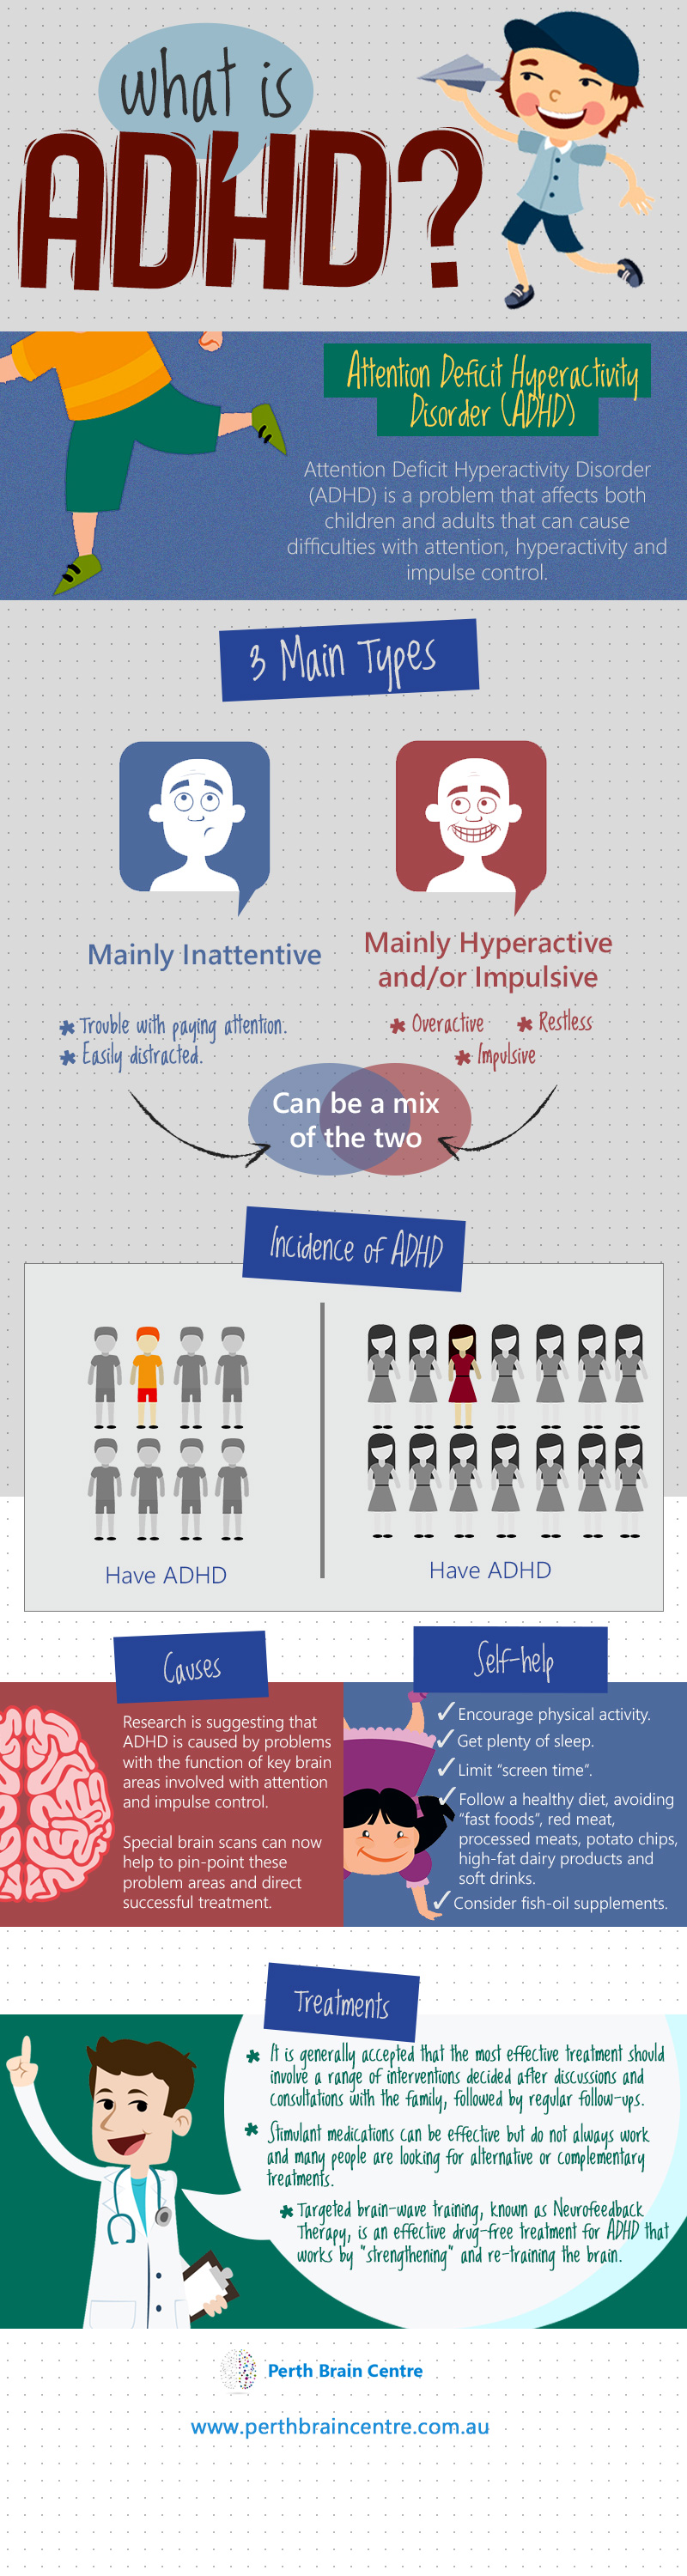 adhd_infographic_perth_brain_centre